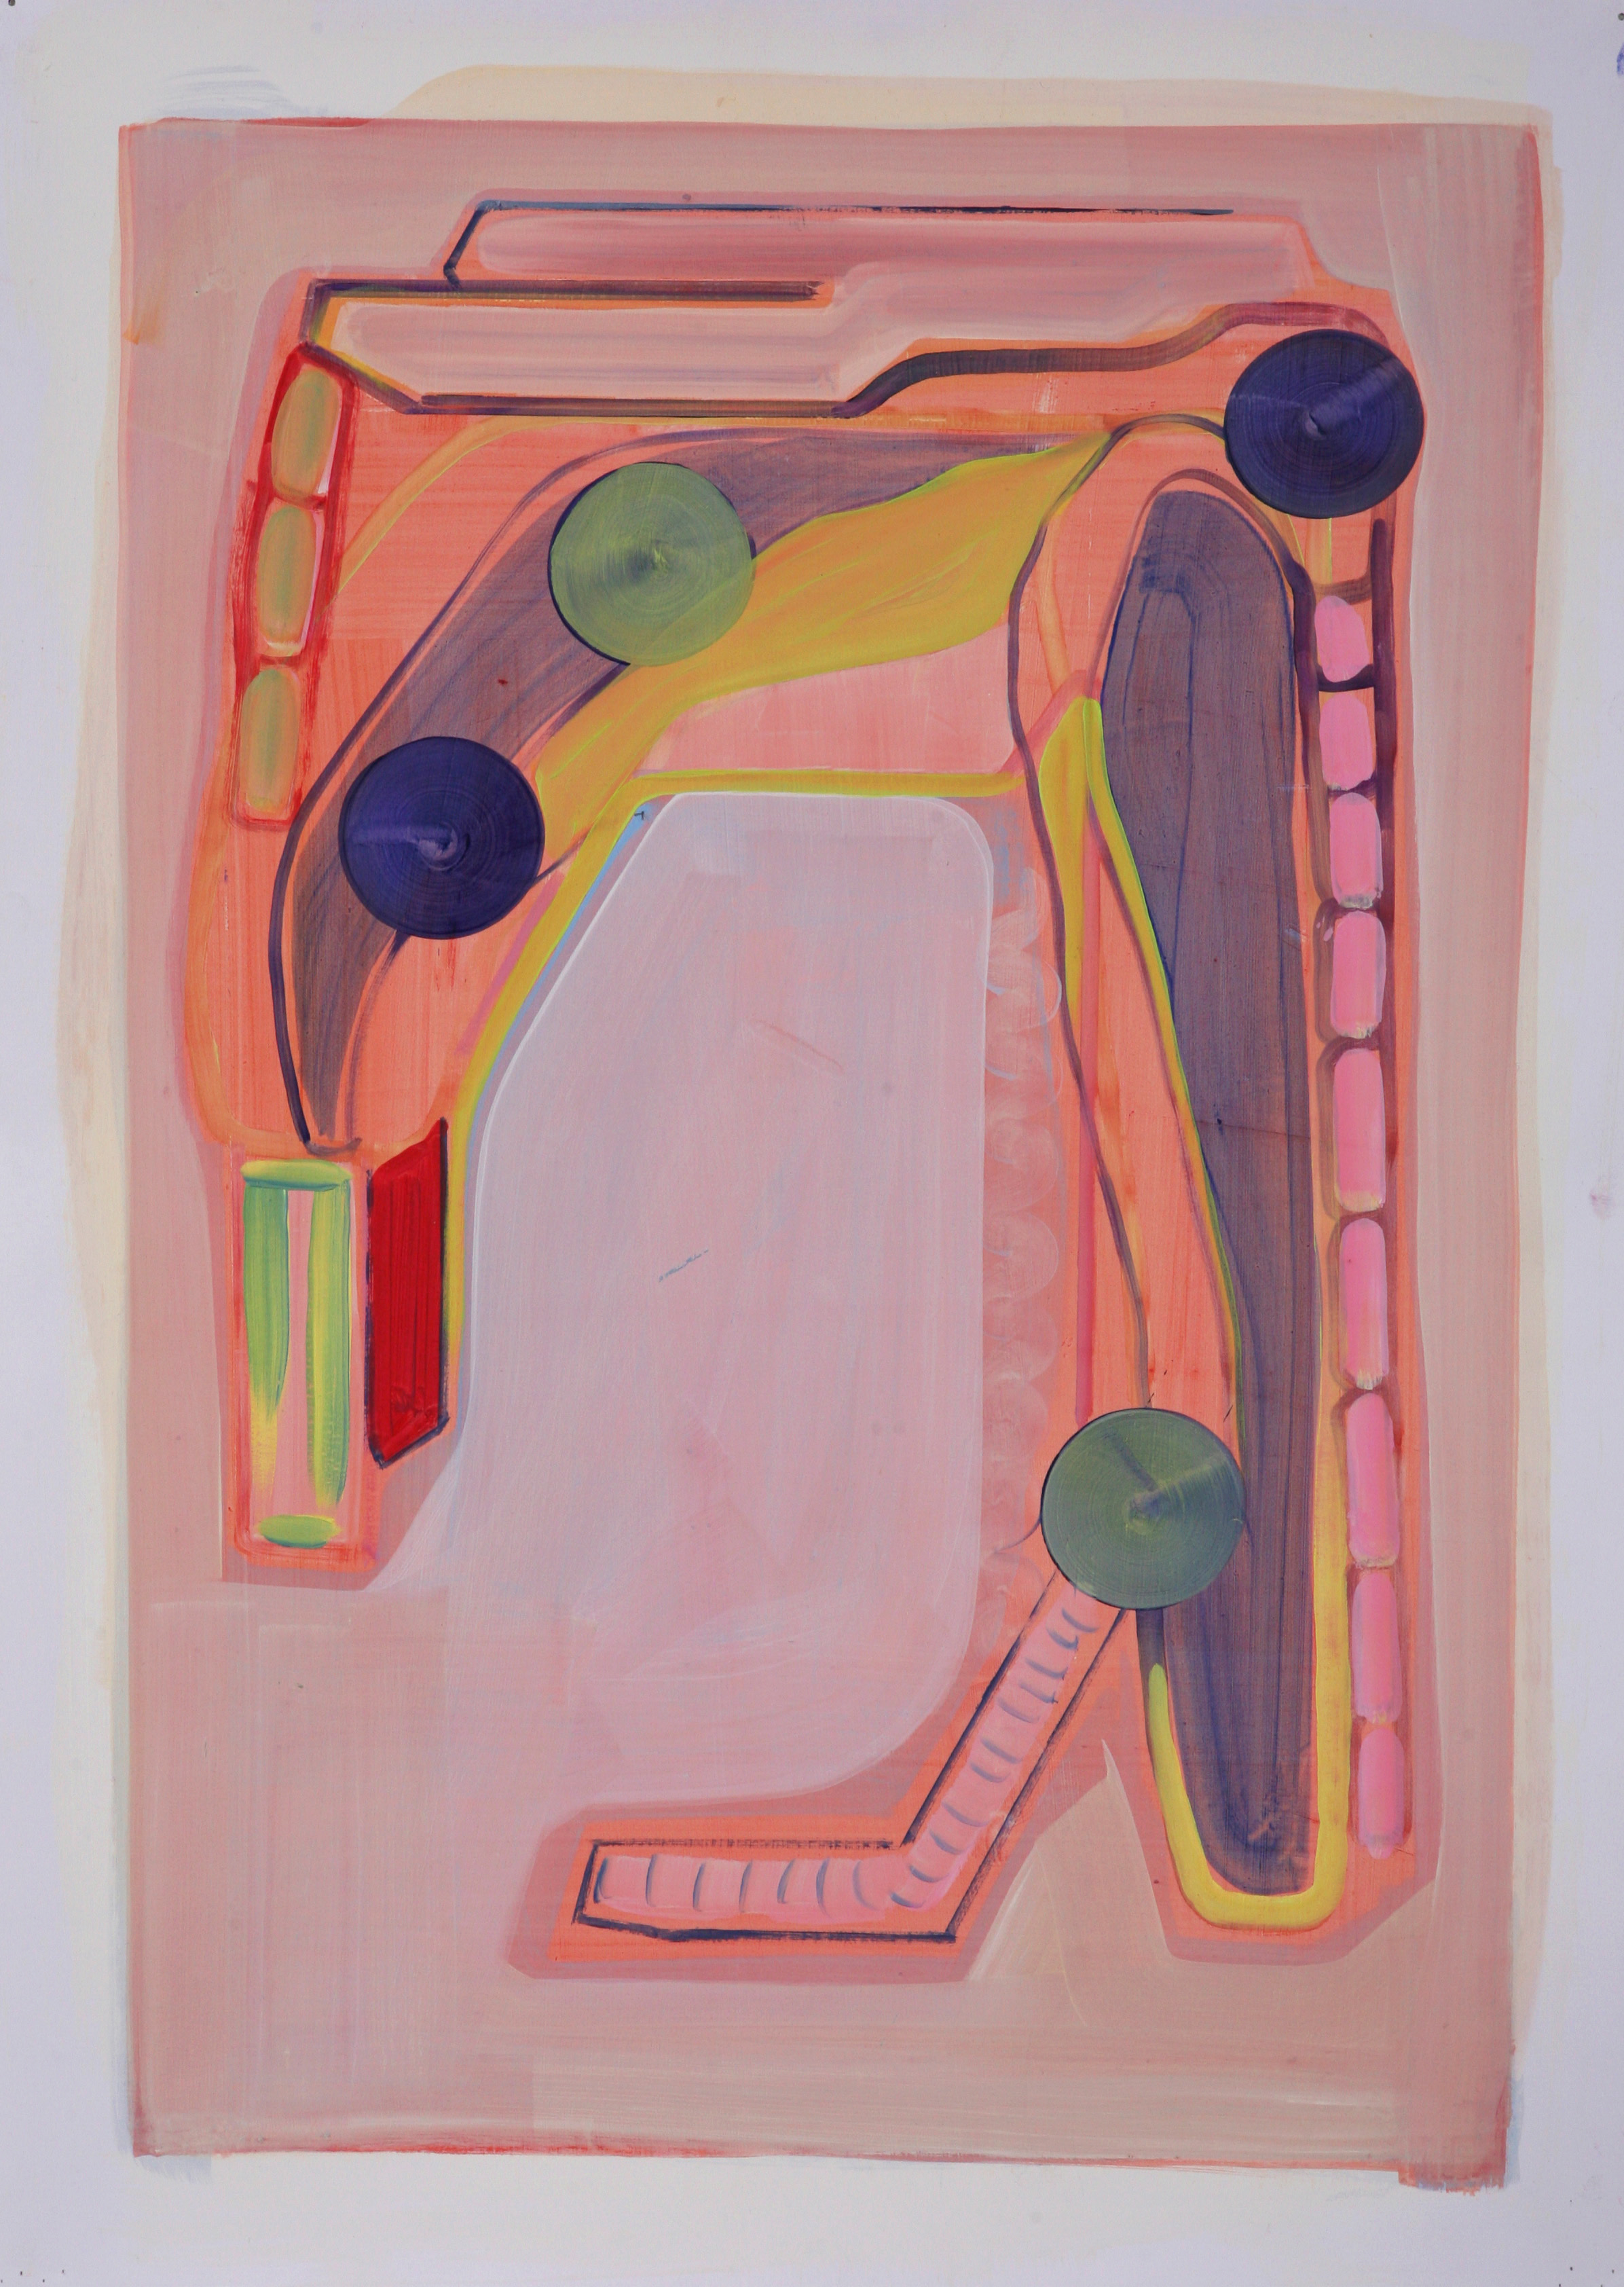 Untitled (hanging), 2013, oil on paper, 59cm x 42cm